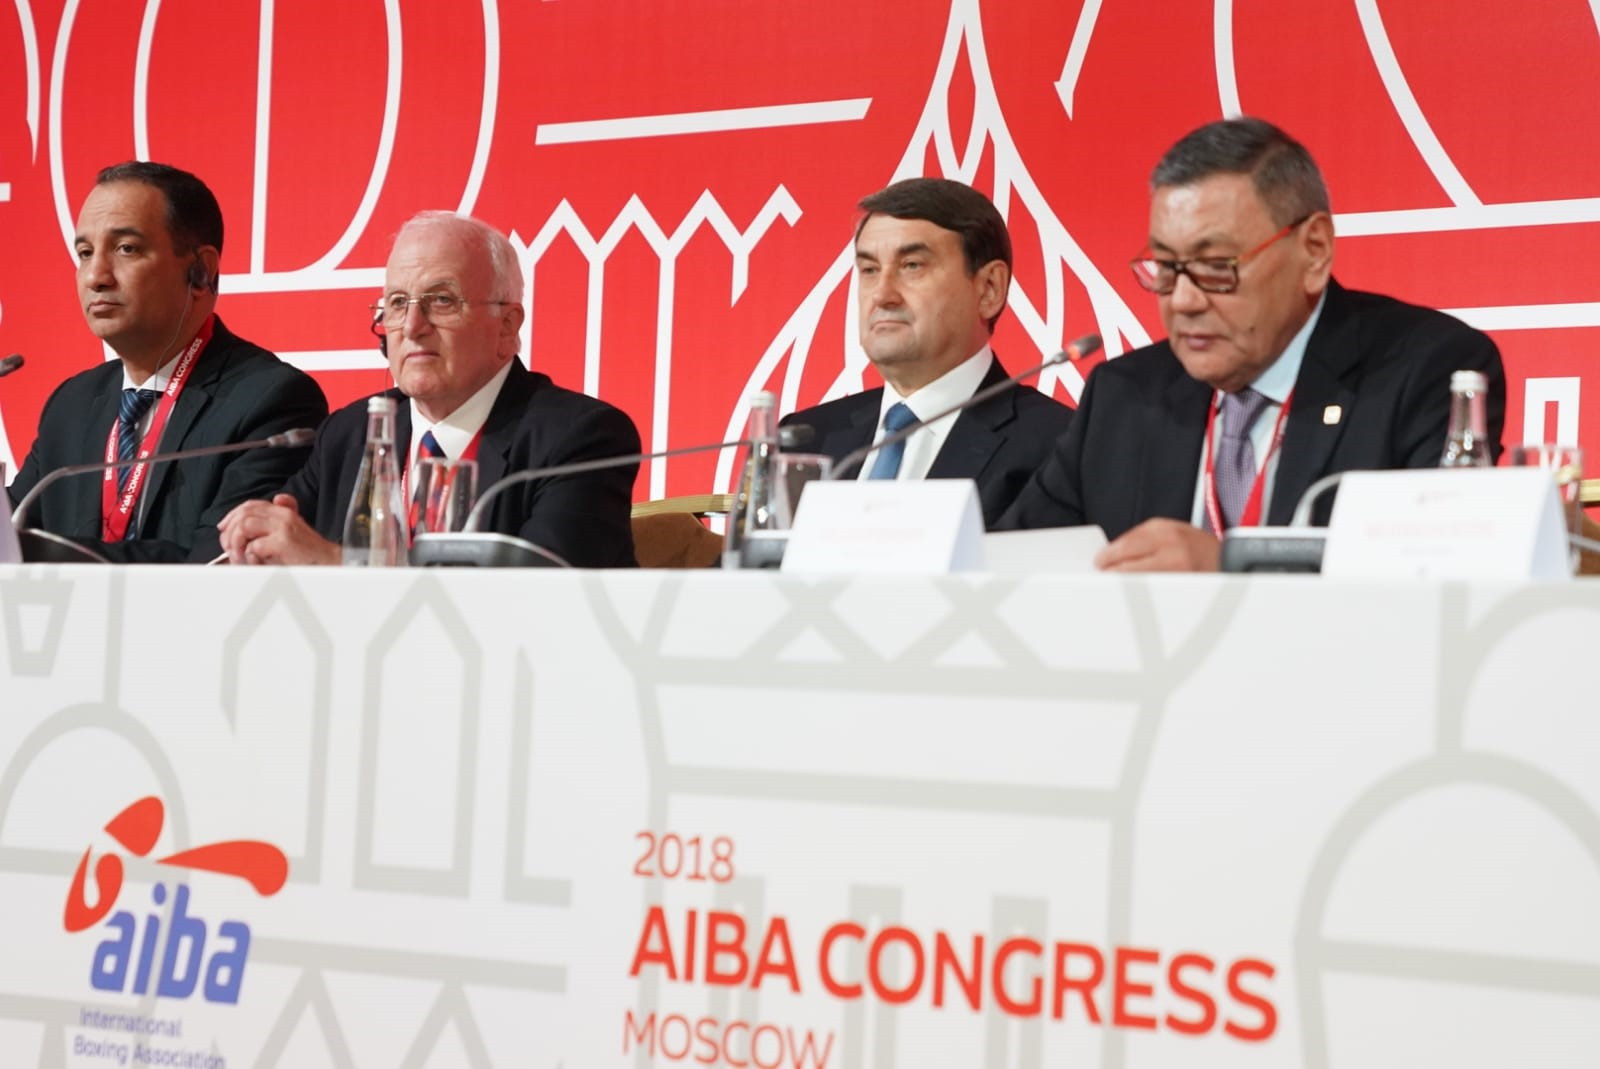 The AIBA Congress in Moscow will debate a proposal which would allow Gafur Rakhimov, far right, to step aside as President for up to year in the hope it will help save boxing's place on the Olympic programme at Tokyo 2020 ©AIBA